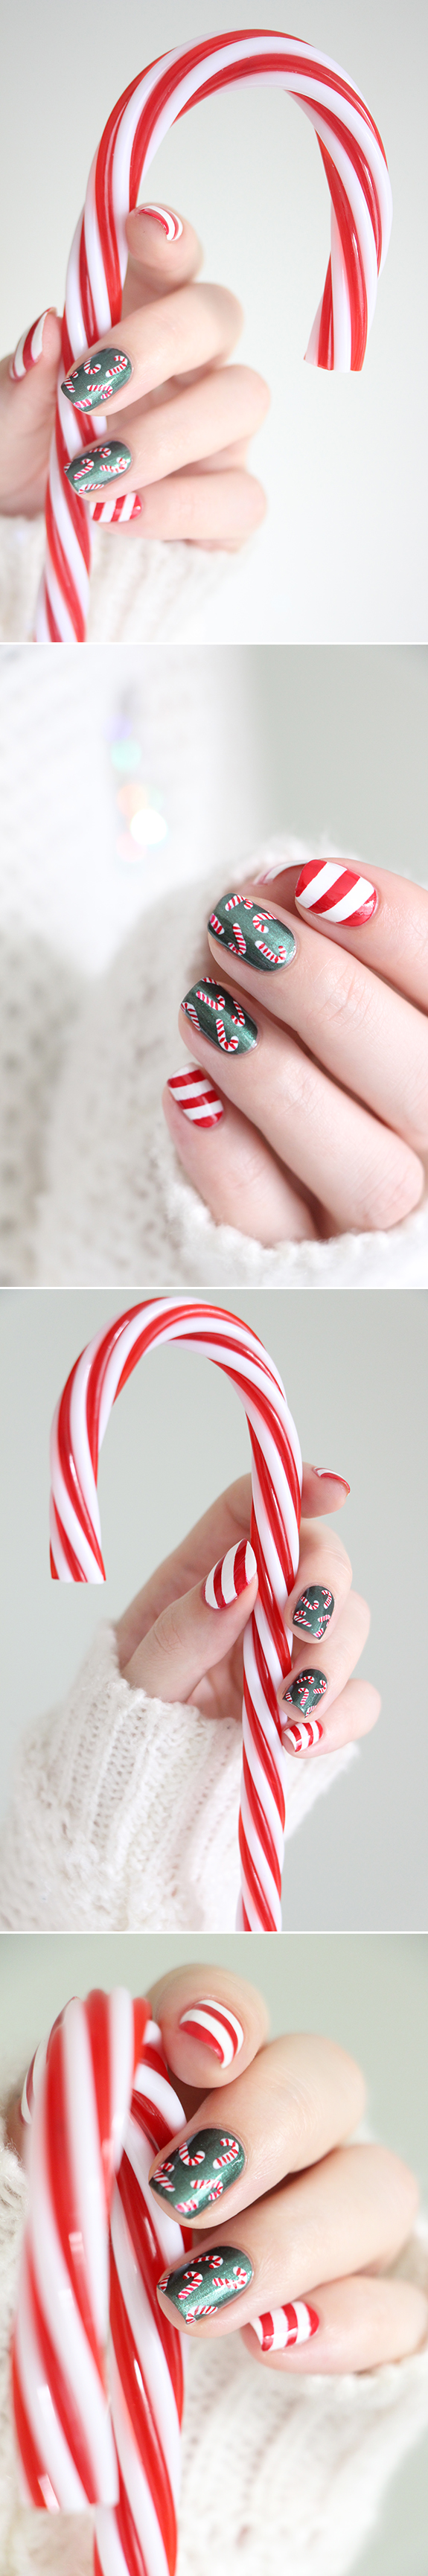 candy-cane-nails-6